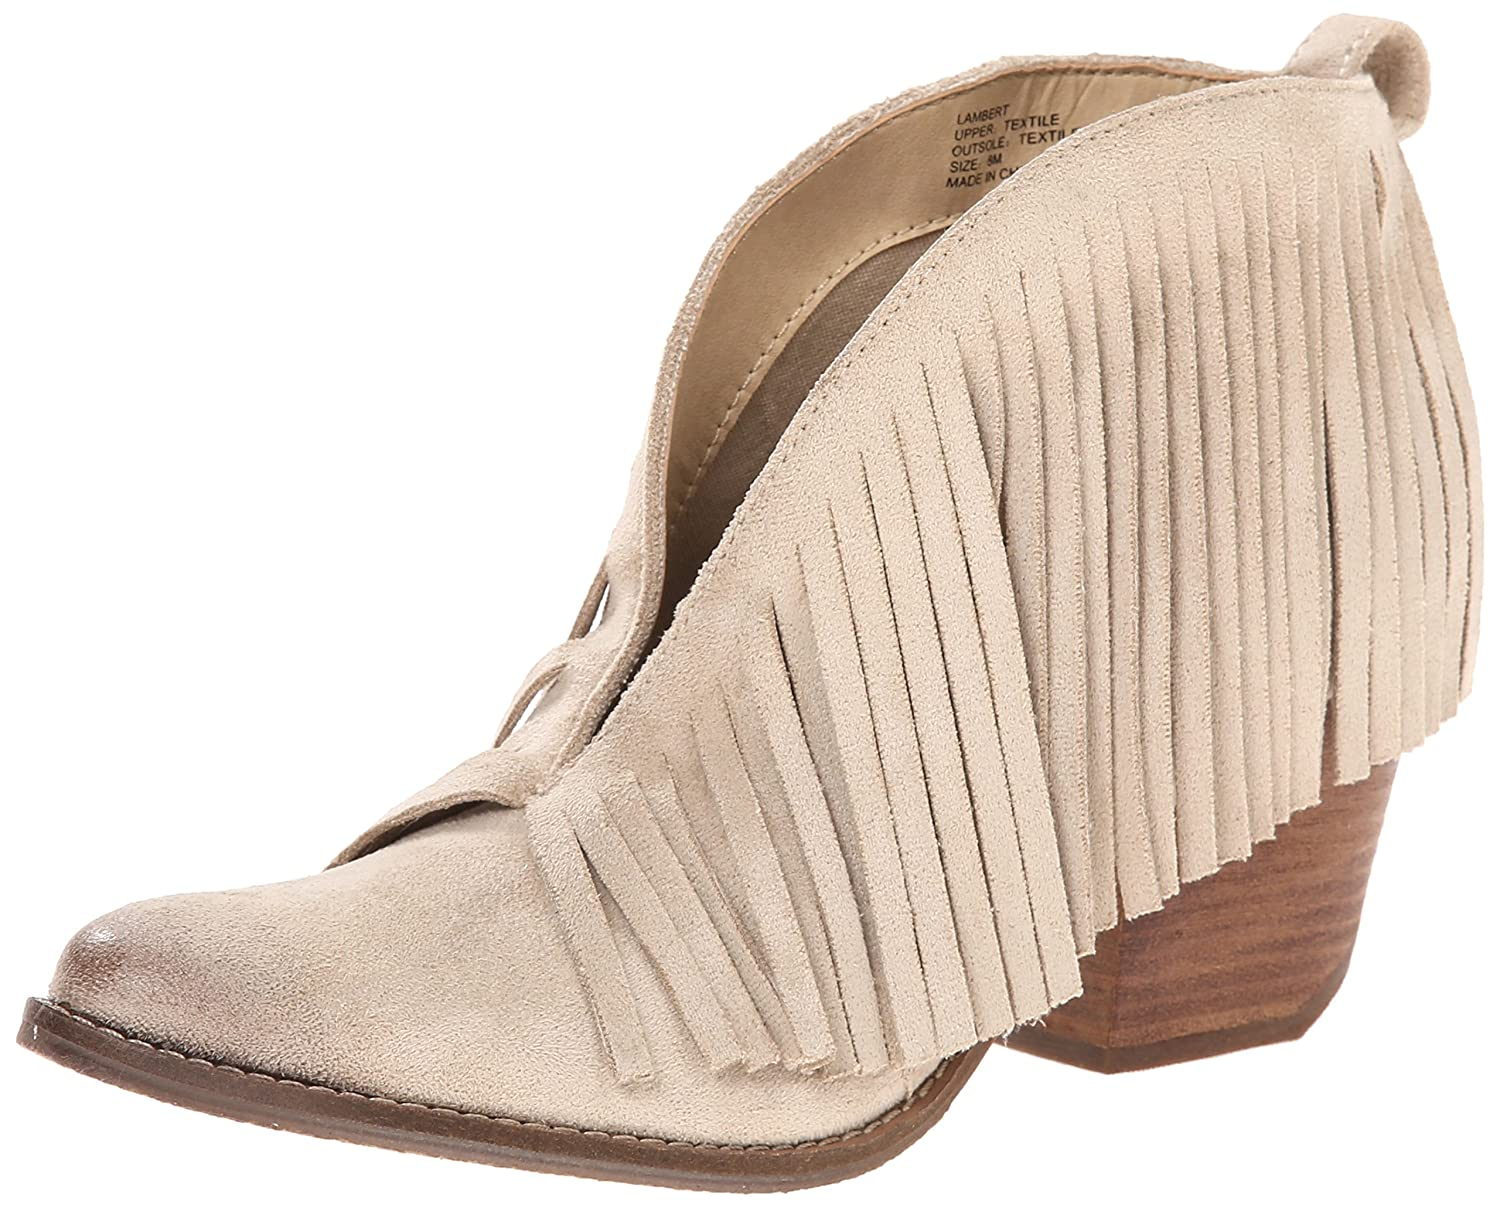 Coconuts by Matisse Women's Lambert Boot B000HR35T4 7.5 B(M) US|Ivory